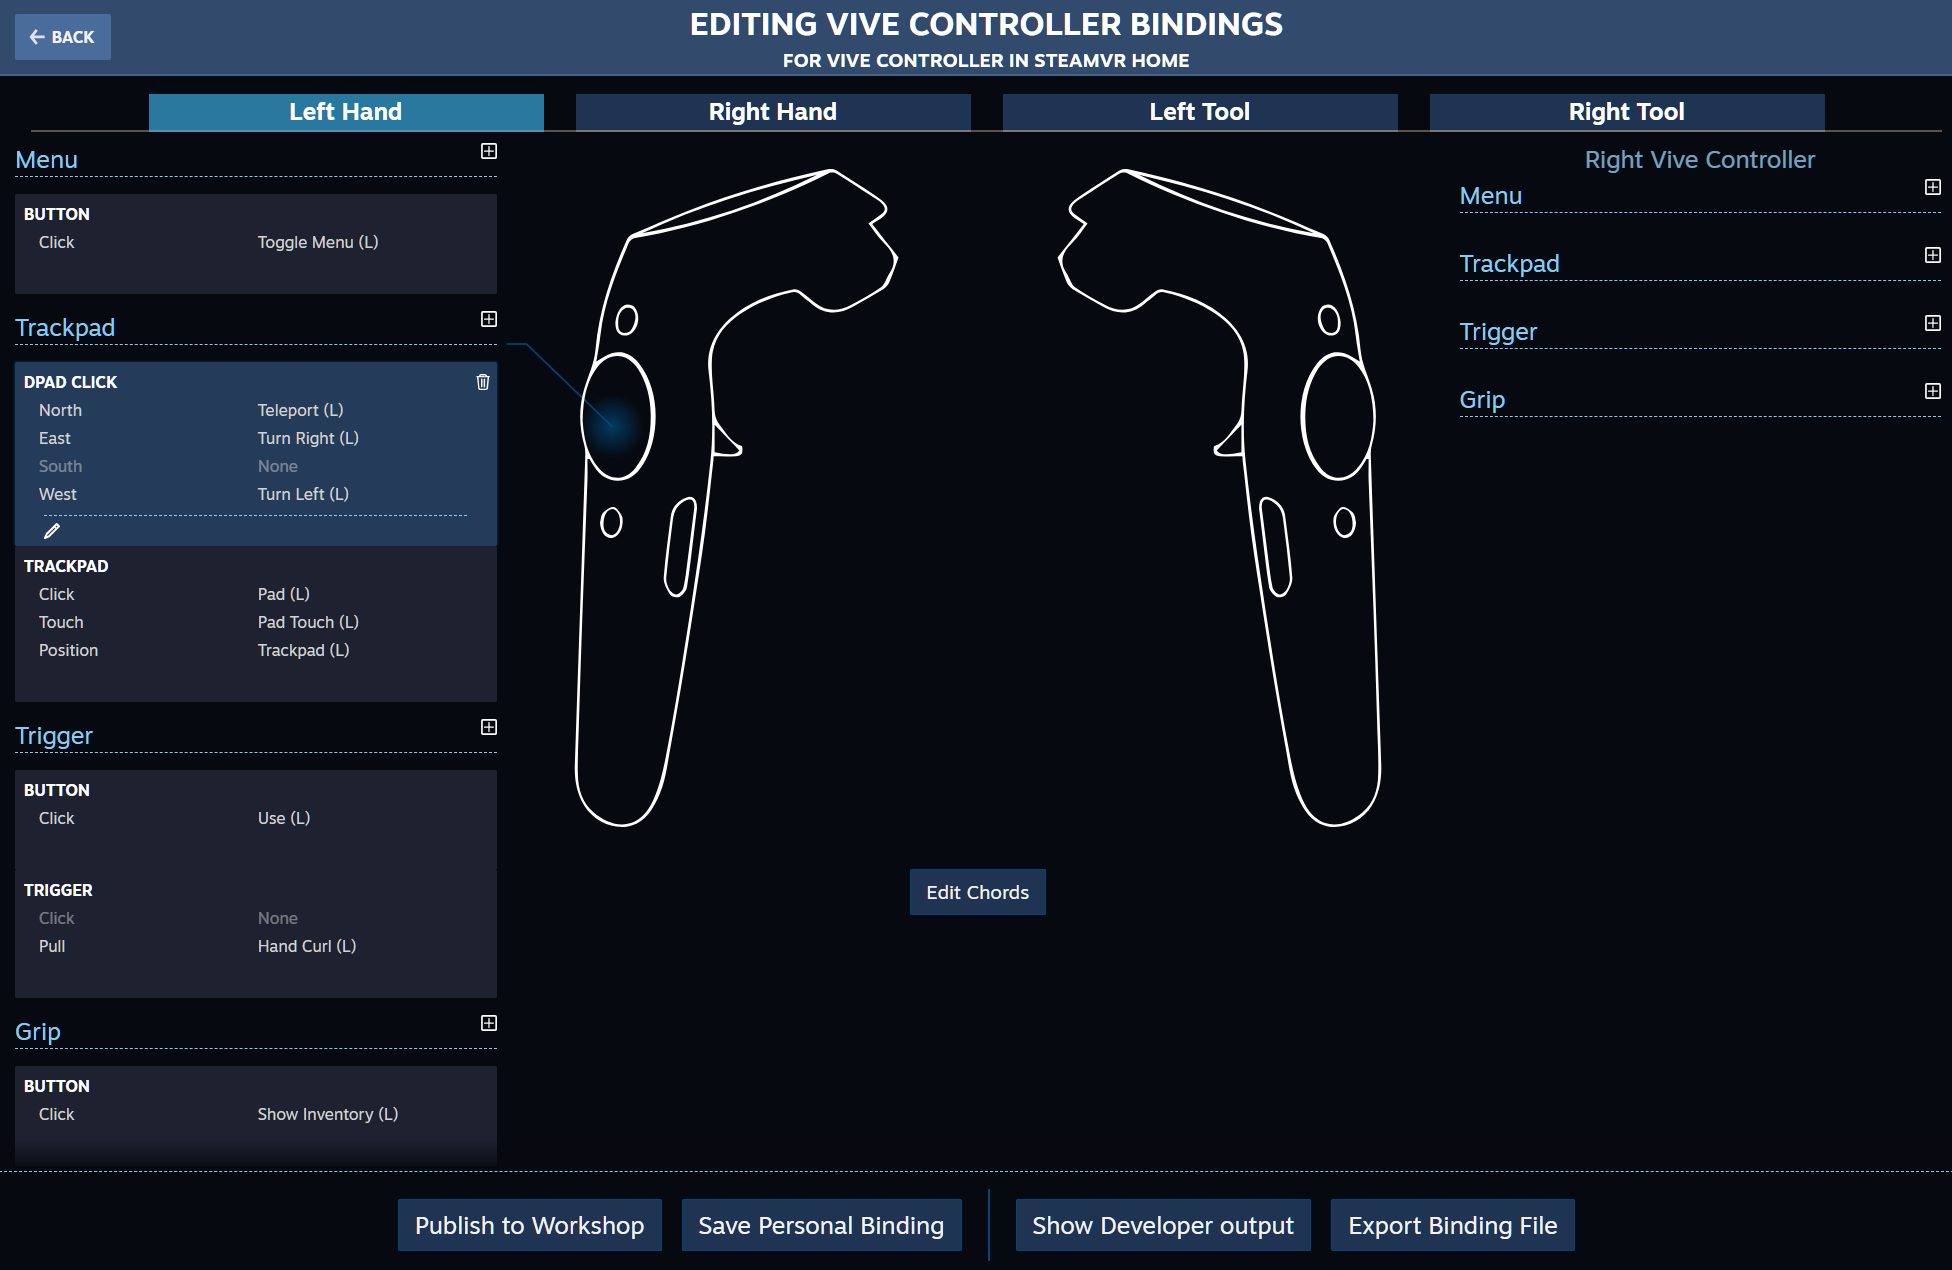 A screenshot of the SteamVR Input UI showing menus available to players of Virtual Reality games on Steam. Image is posted on a blog page for Digital Worlds VR arcade located in Franklin, Cool Springs Tennessee.